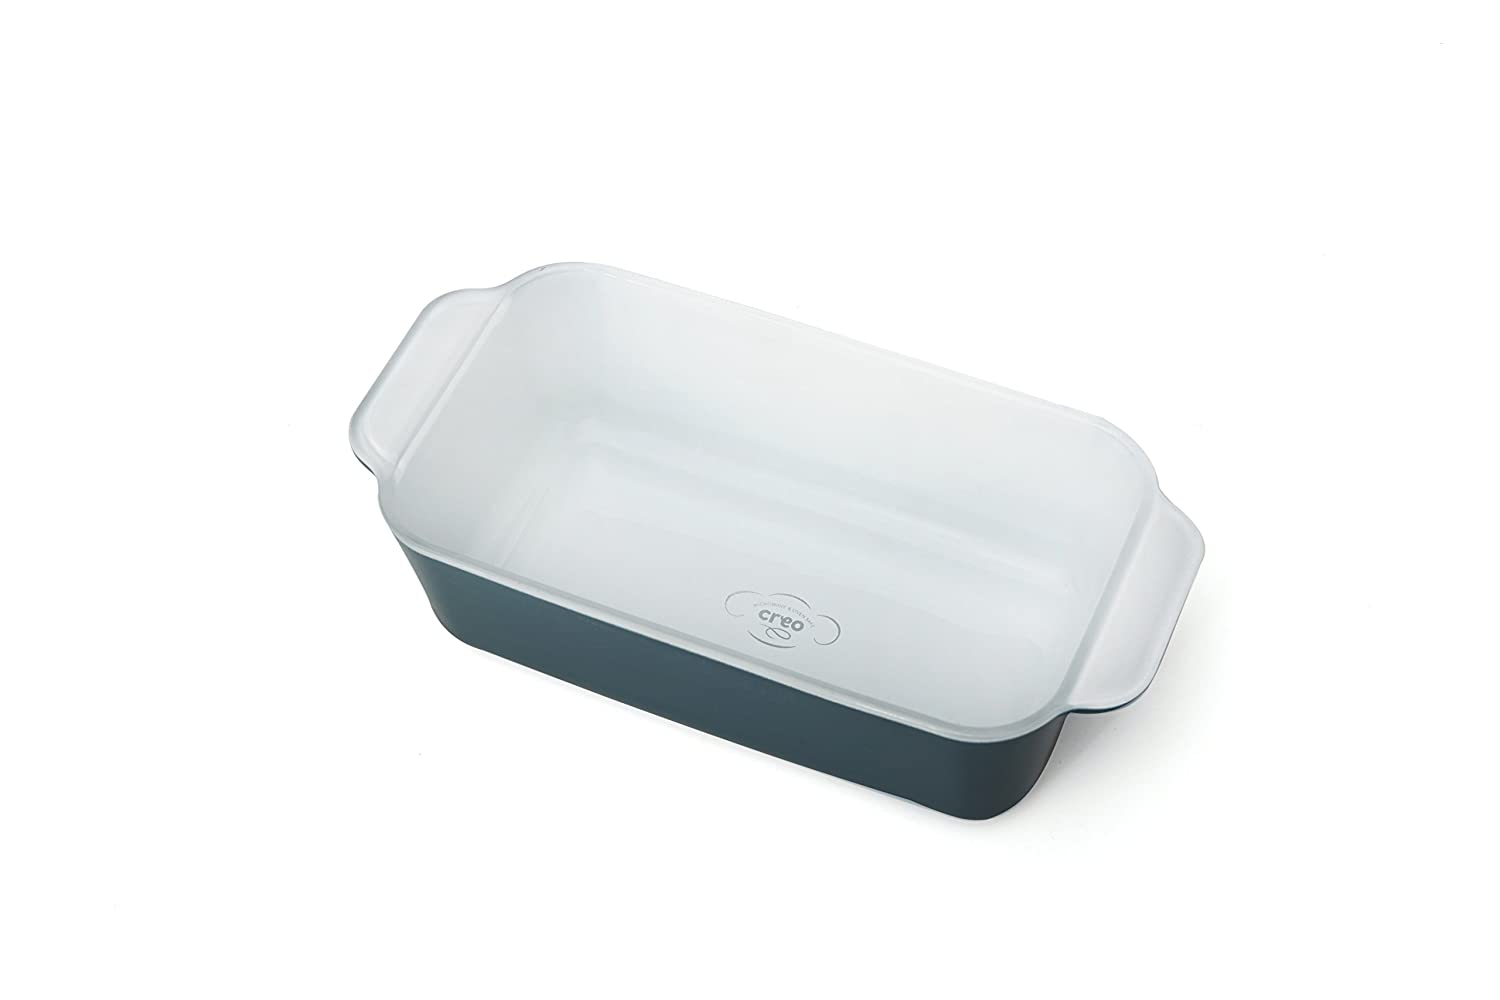 Creo SmartGlass Cookware 8.5 inch Loaf Pan Shanghai Red